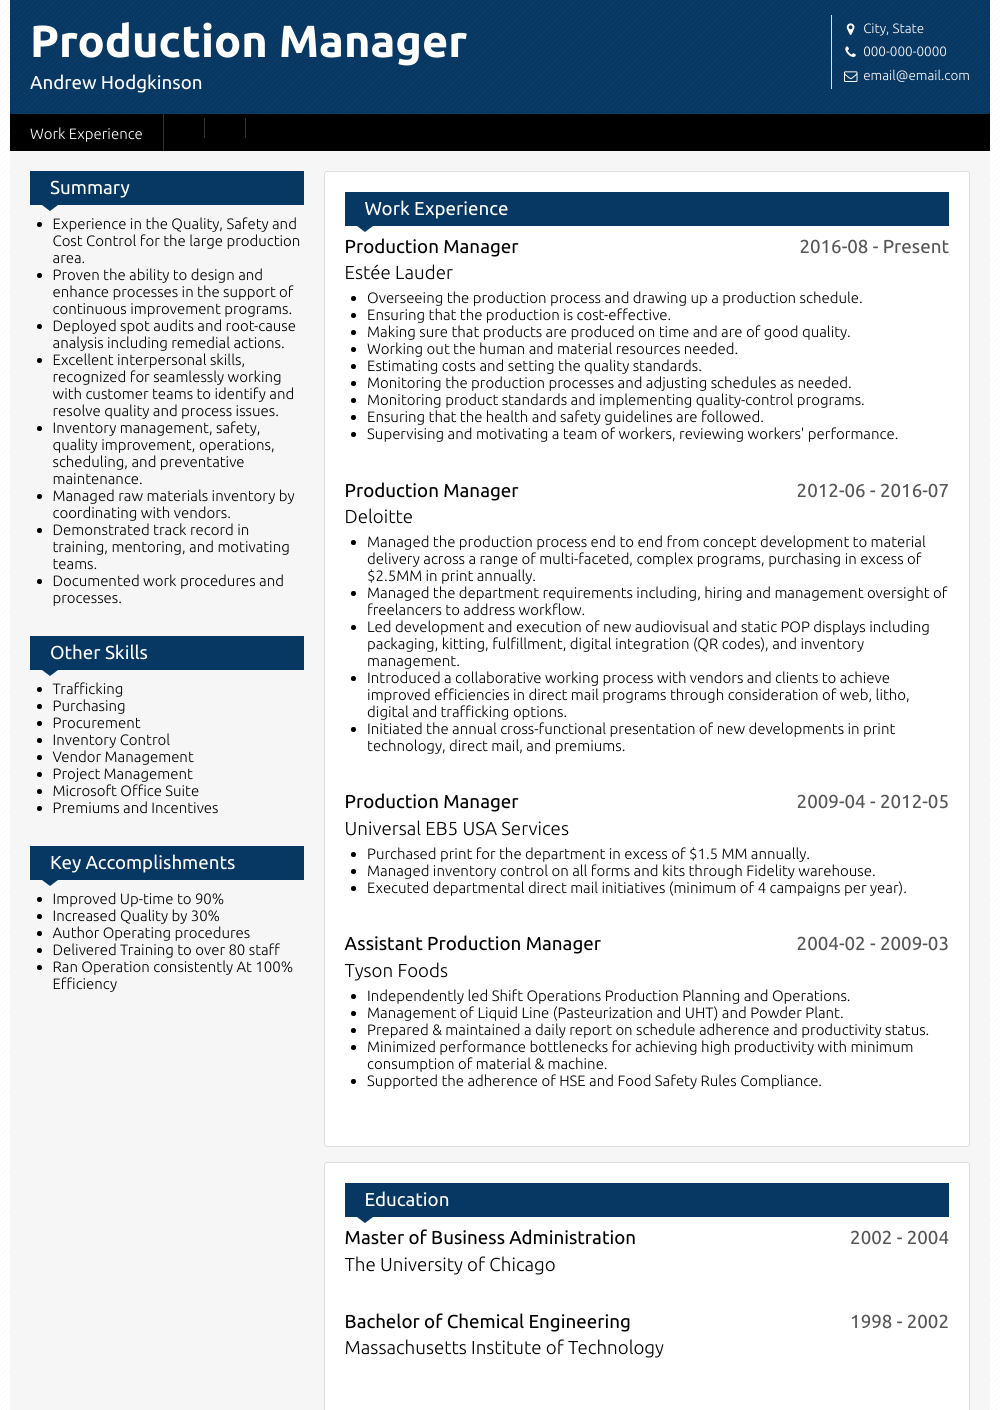 Production Manager Resume Sample and Template